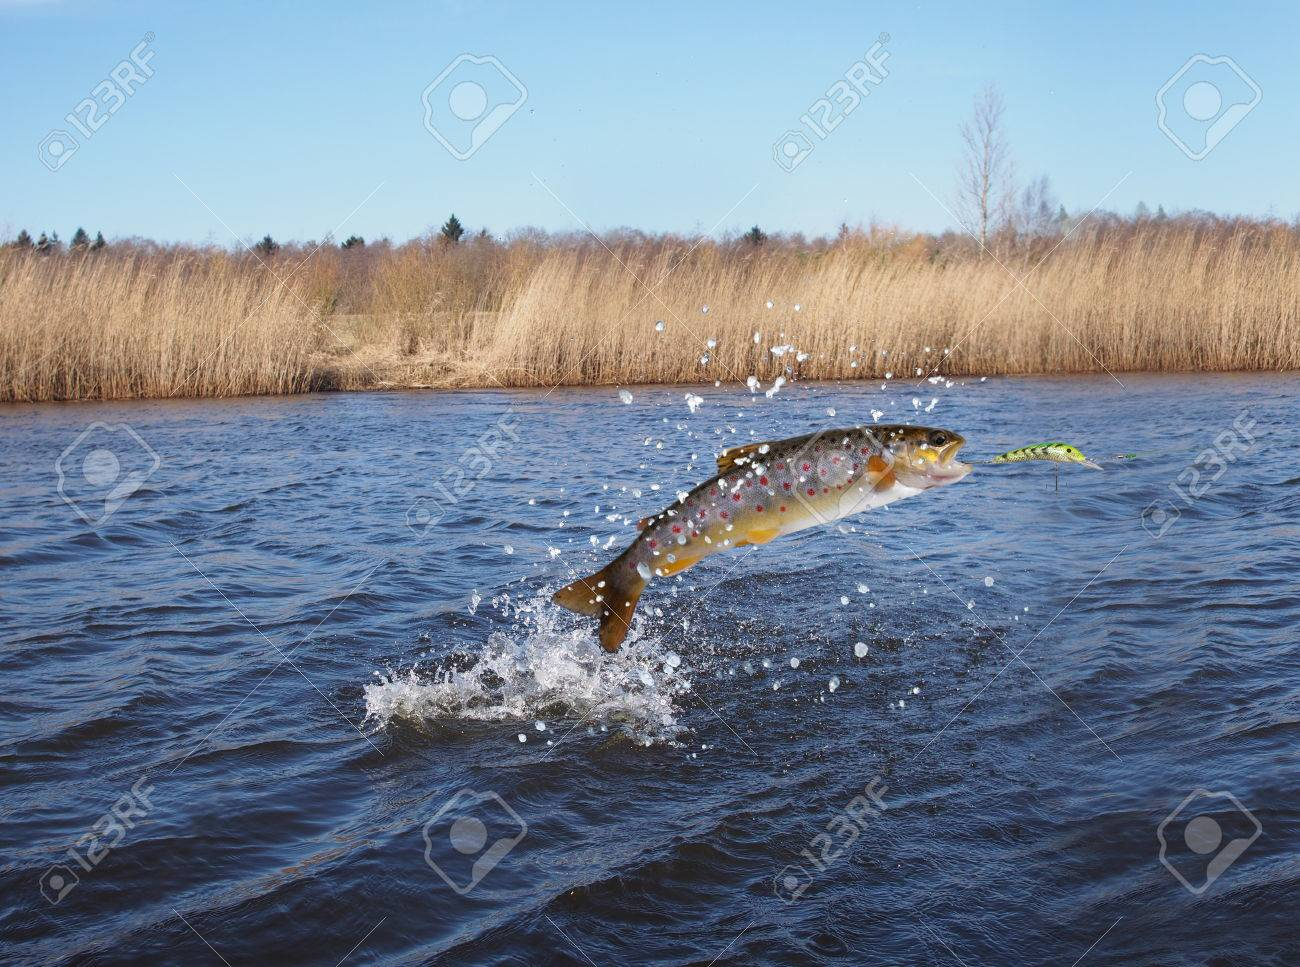 jumping out from water salmon on river background - 39046369